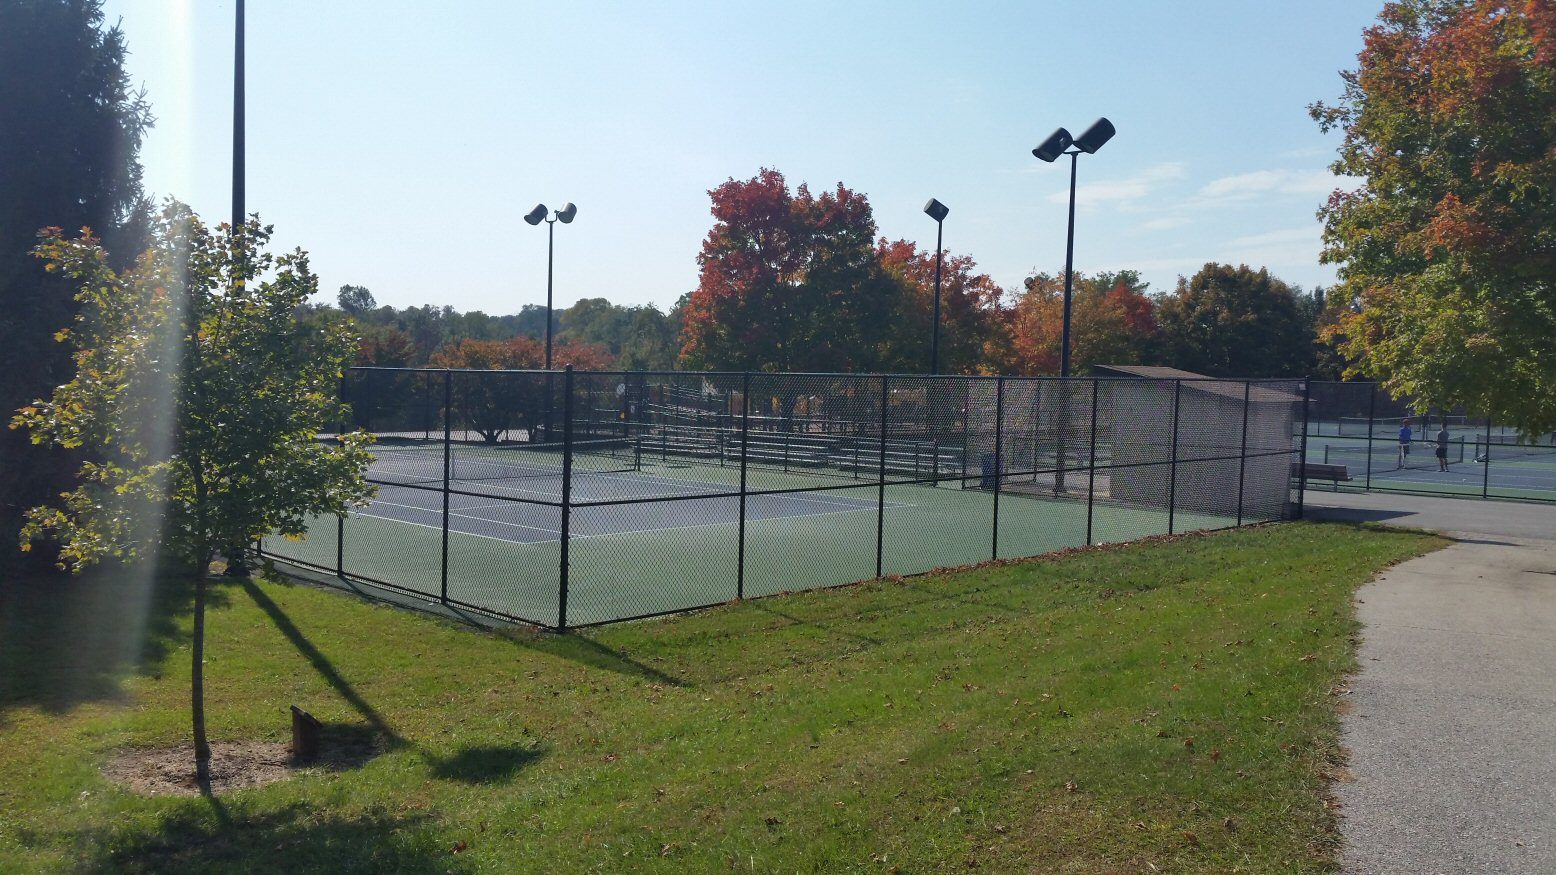 The Tennis Courts at the West Entrance